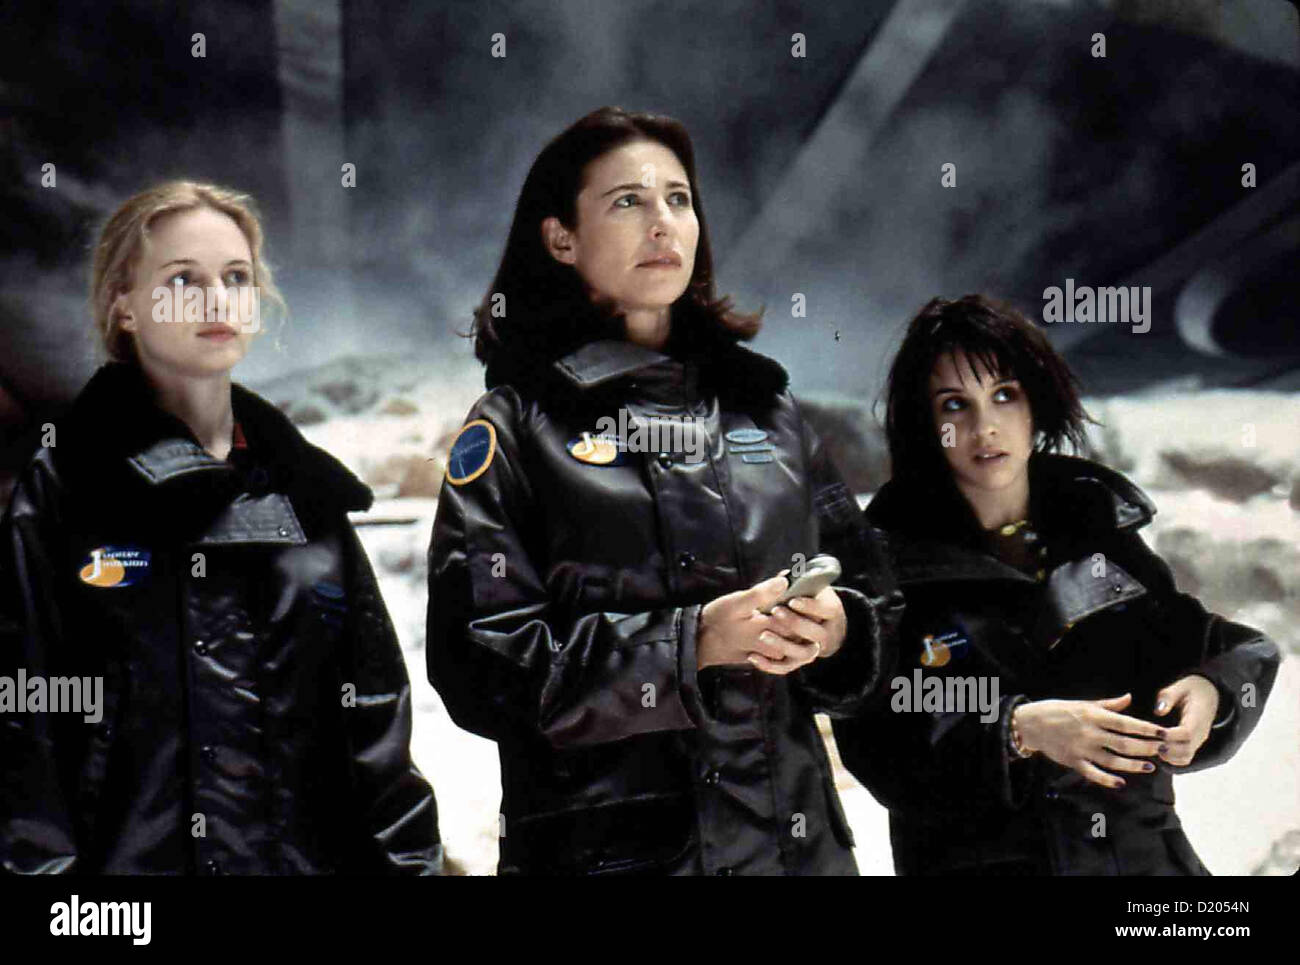 lost in space heather graham mimi rogers lacey